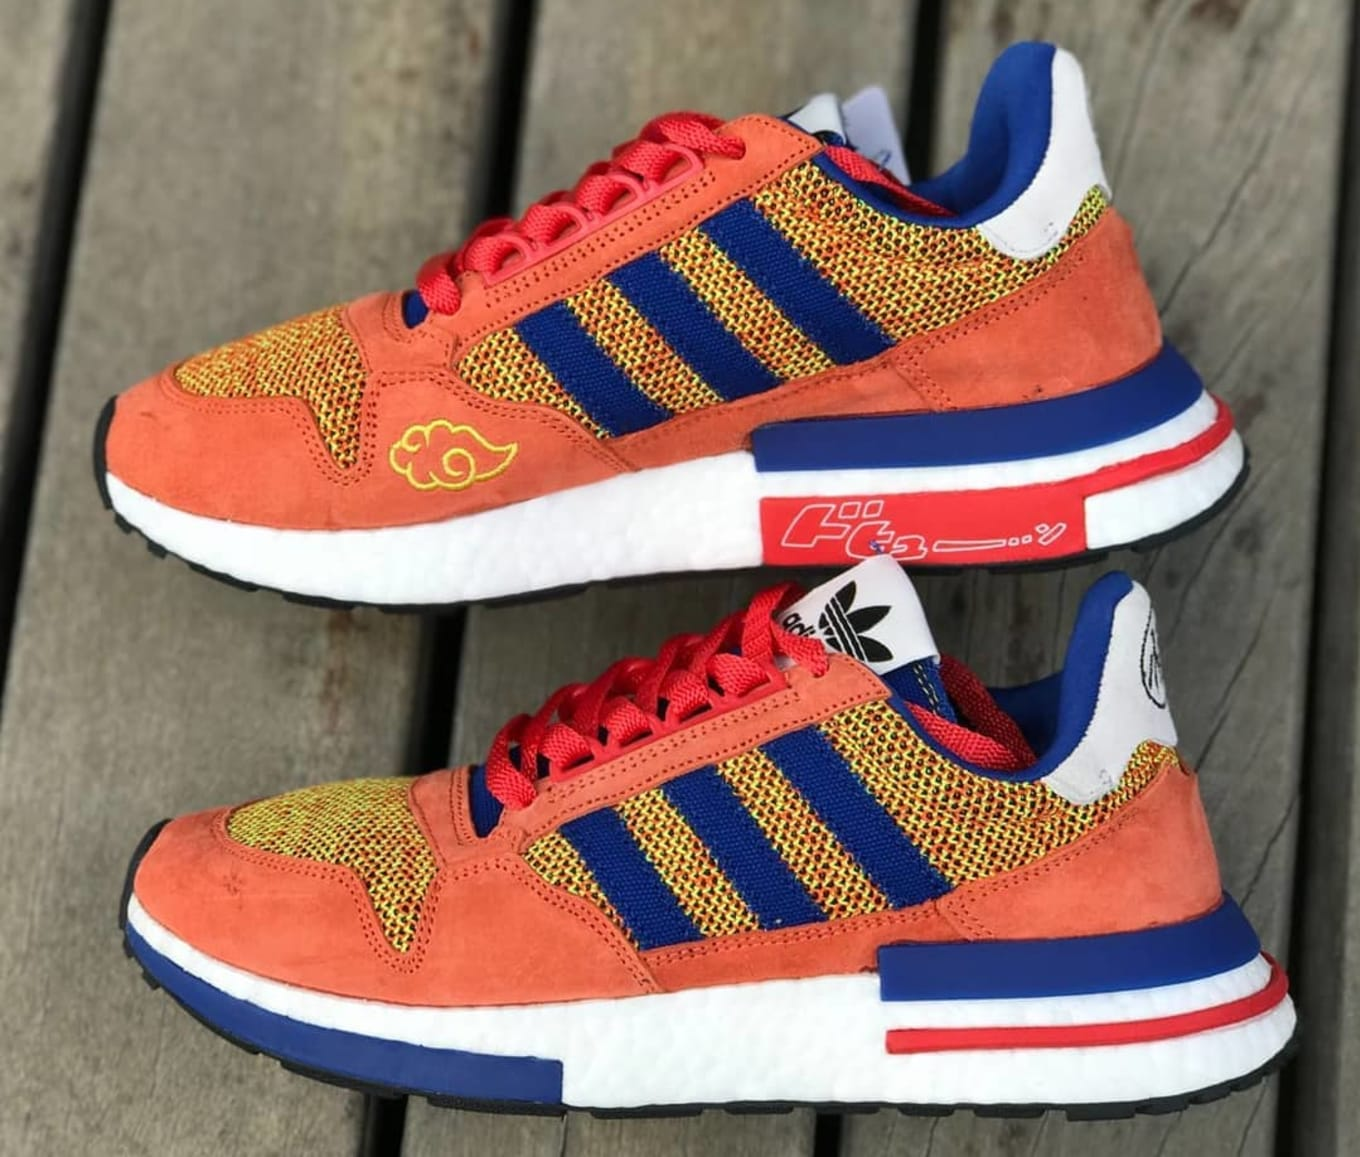 first rate 6c045 c9cc3 ... Son Goku Dragon Ball Z x Adidas Sneakers. ZX 500 RM coming this fall.